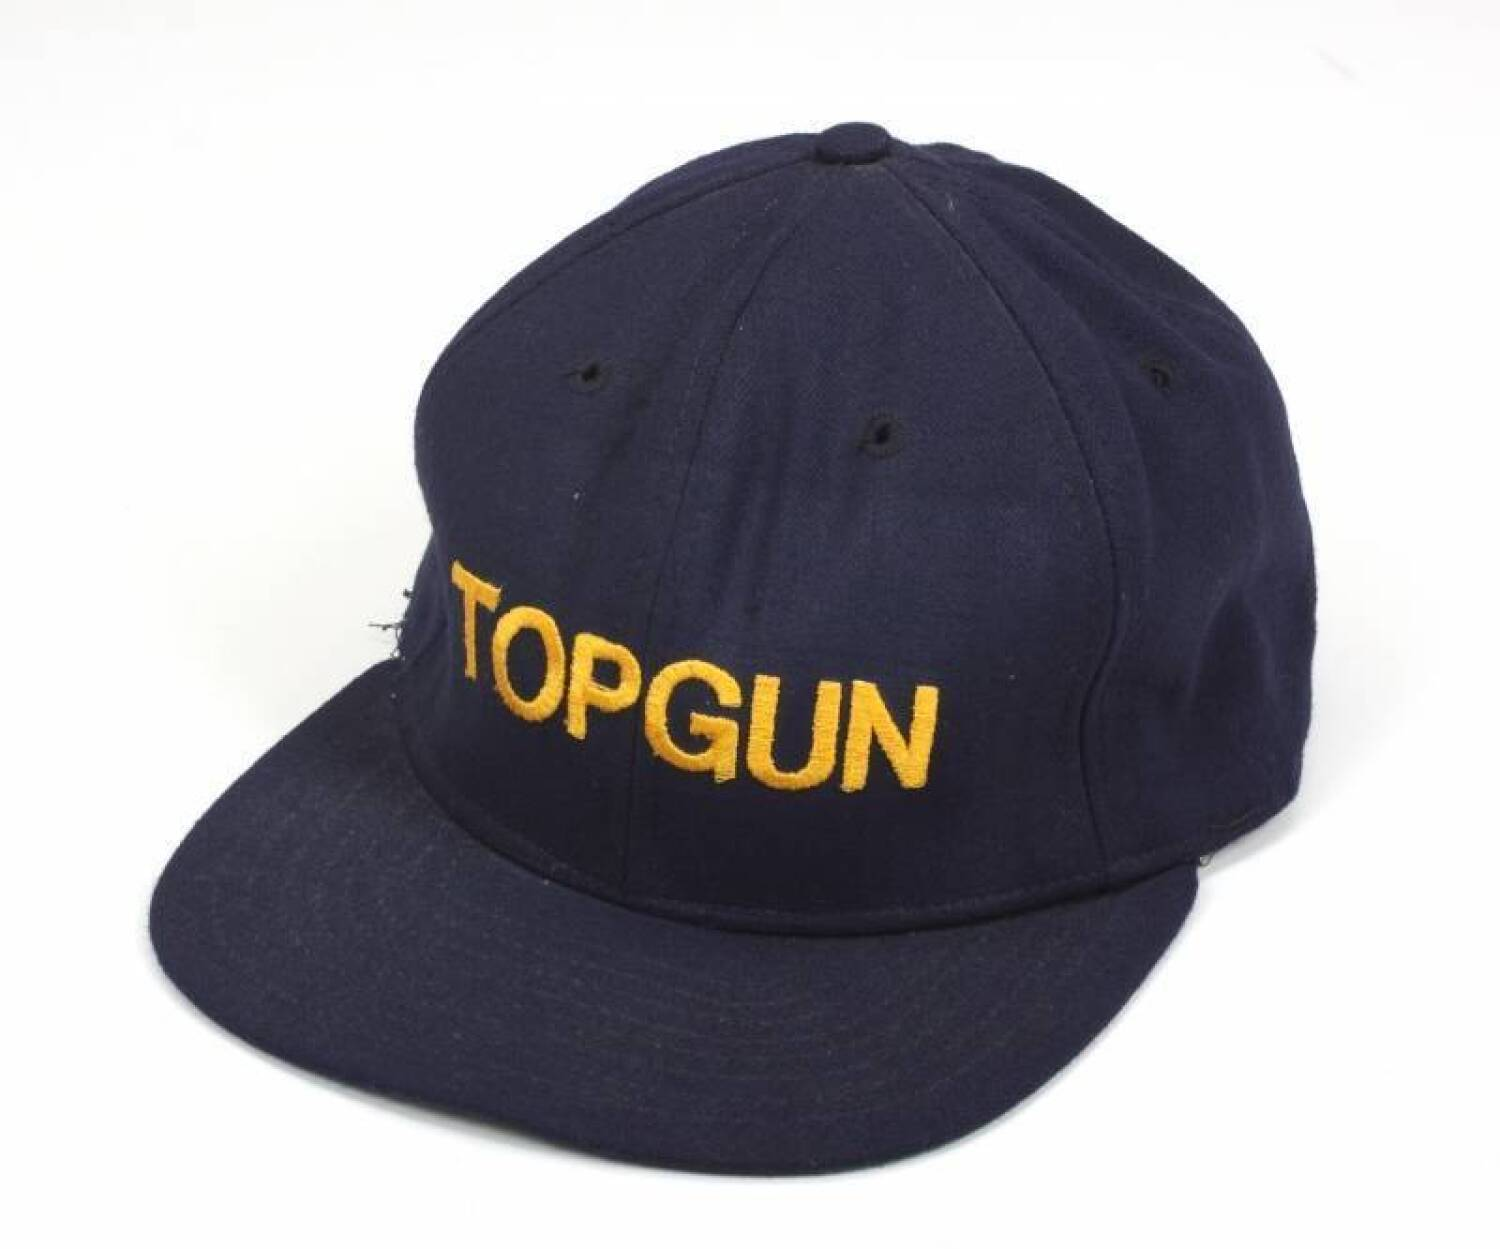 Top Gun Baseball Cap Current Price 400